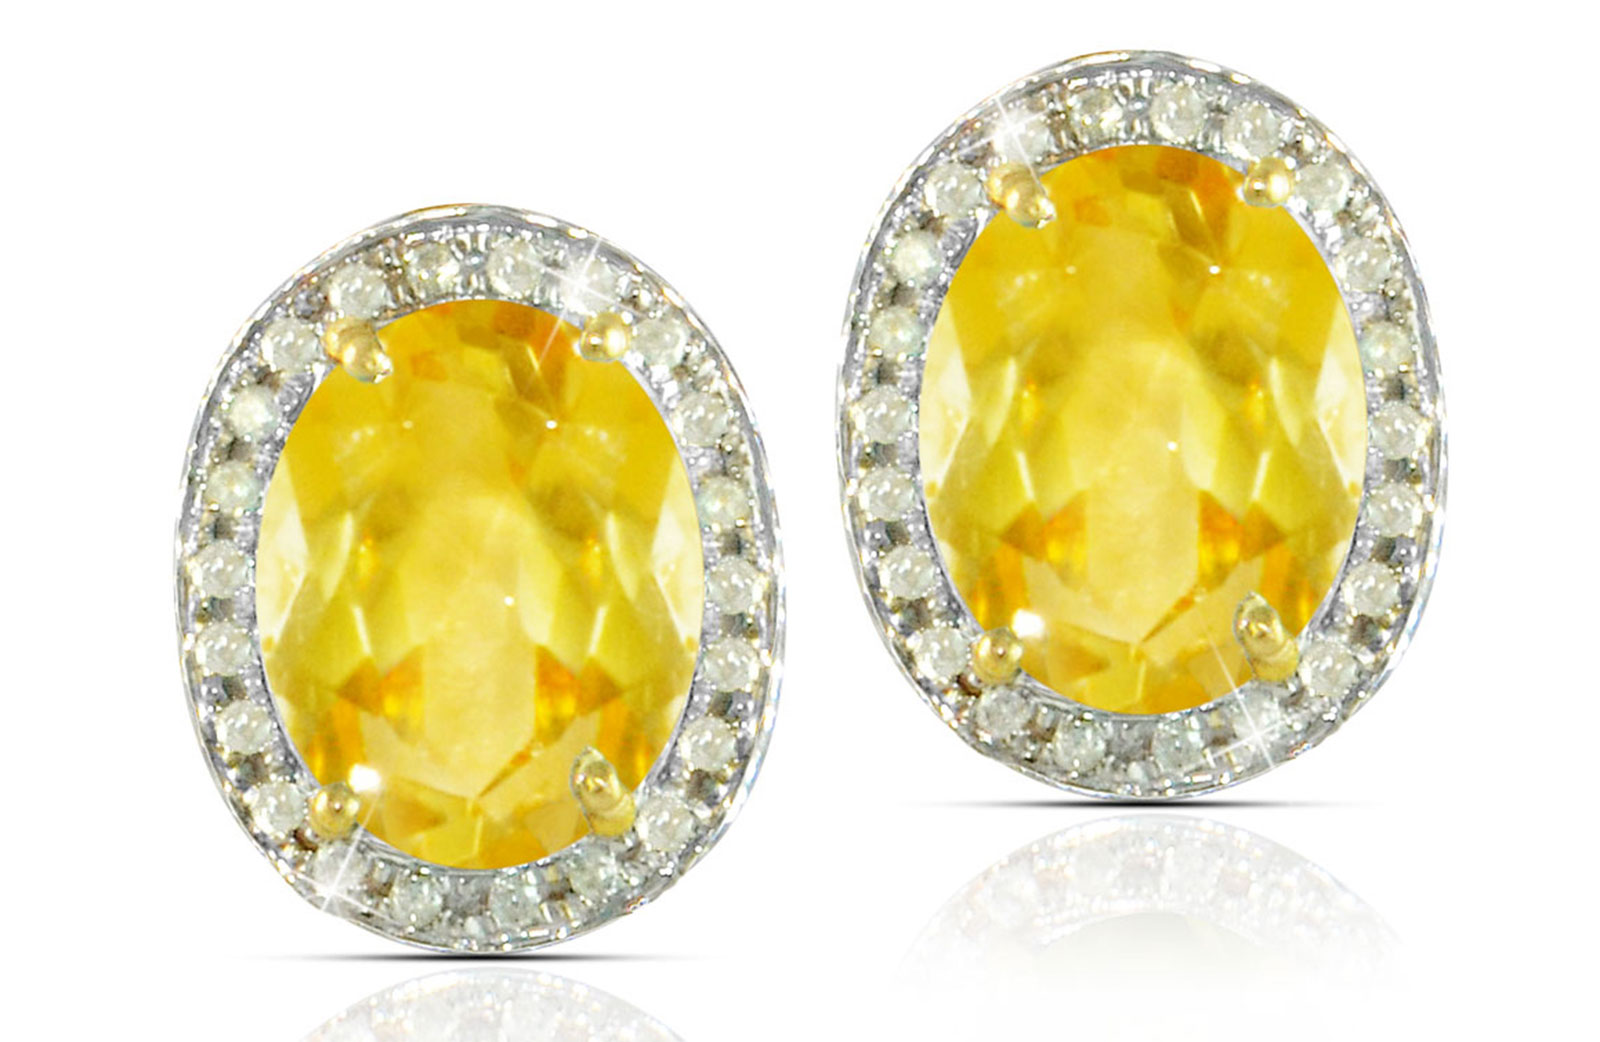 Vera Perla 18k  Gold 10mm Genuine Oval  Cut Citrine 0.24Ct Genuine Diamonds earrings